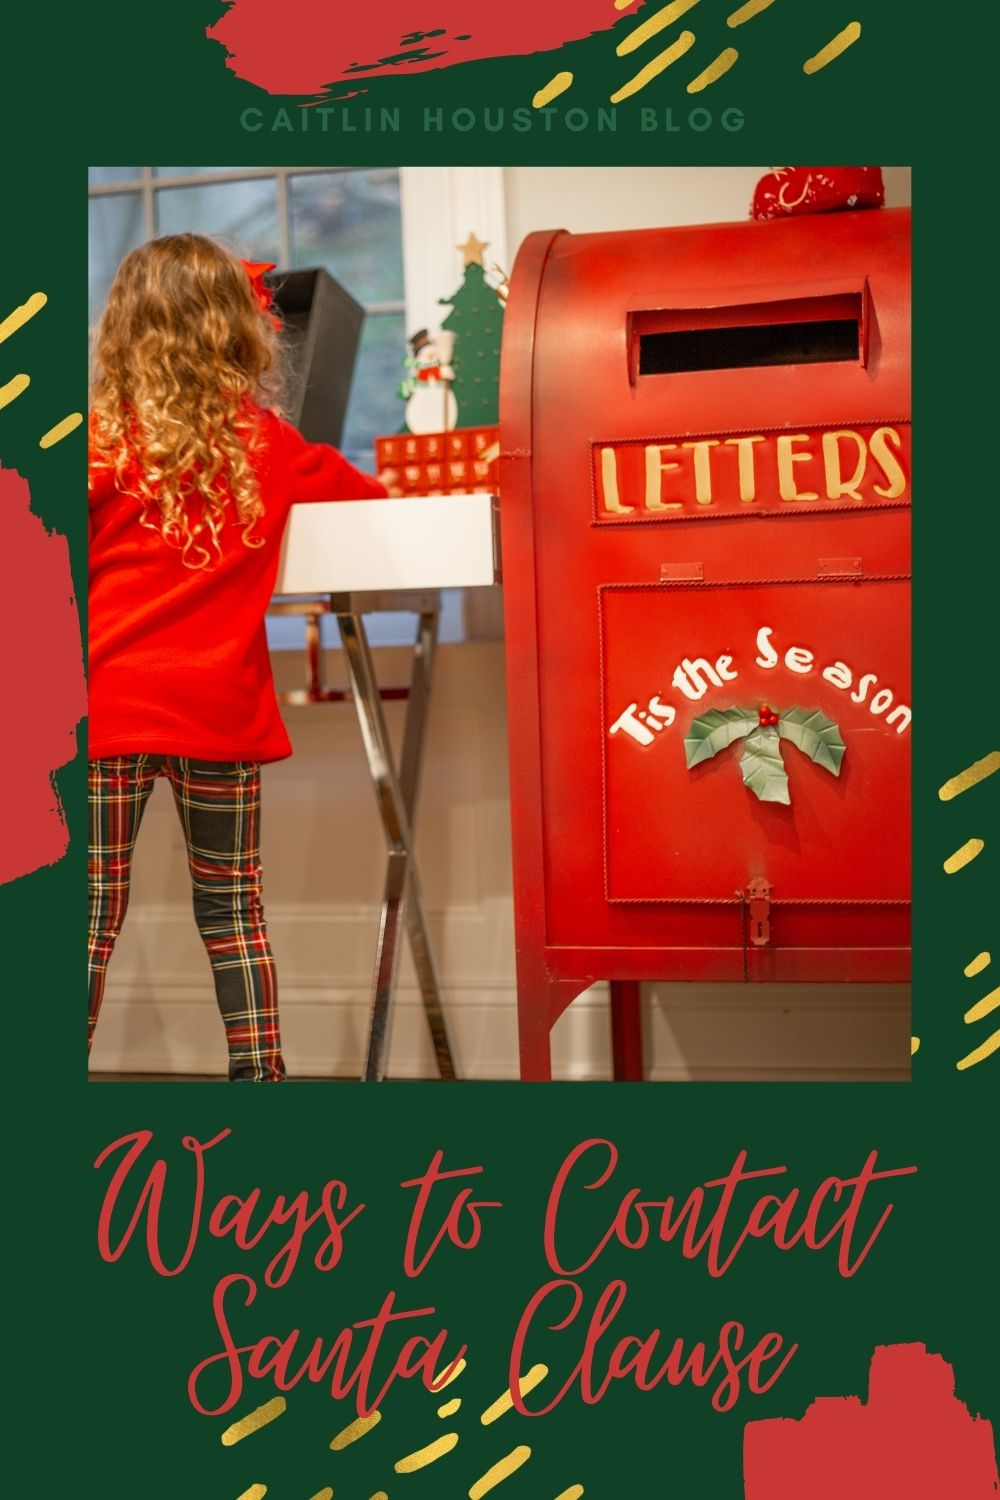 Ways to Contact Santa Clause - Safe and fun ways to contact Santa for the holidays